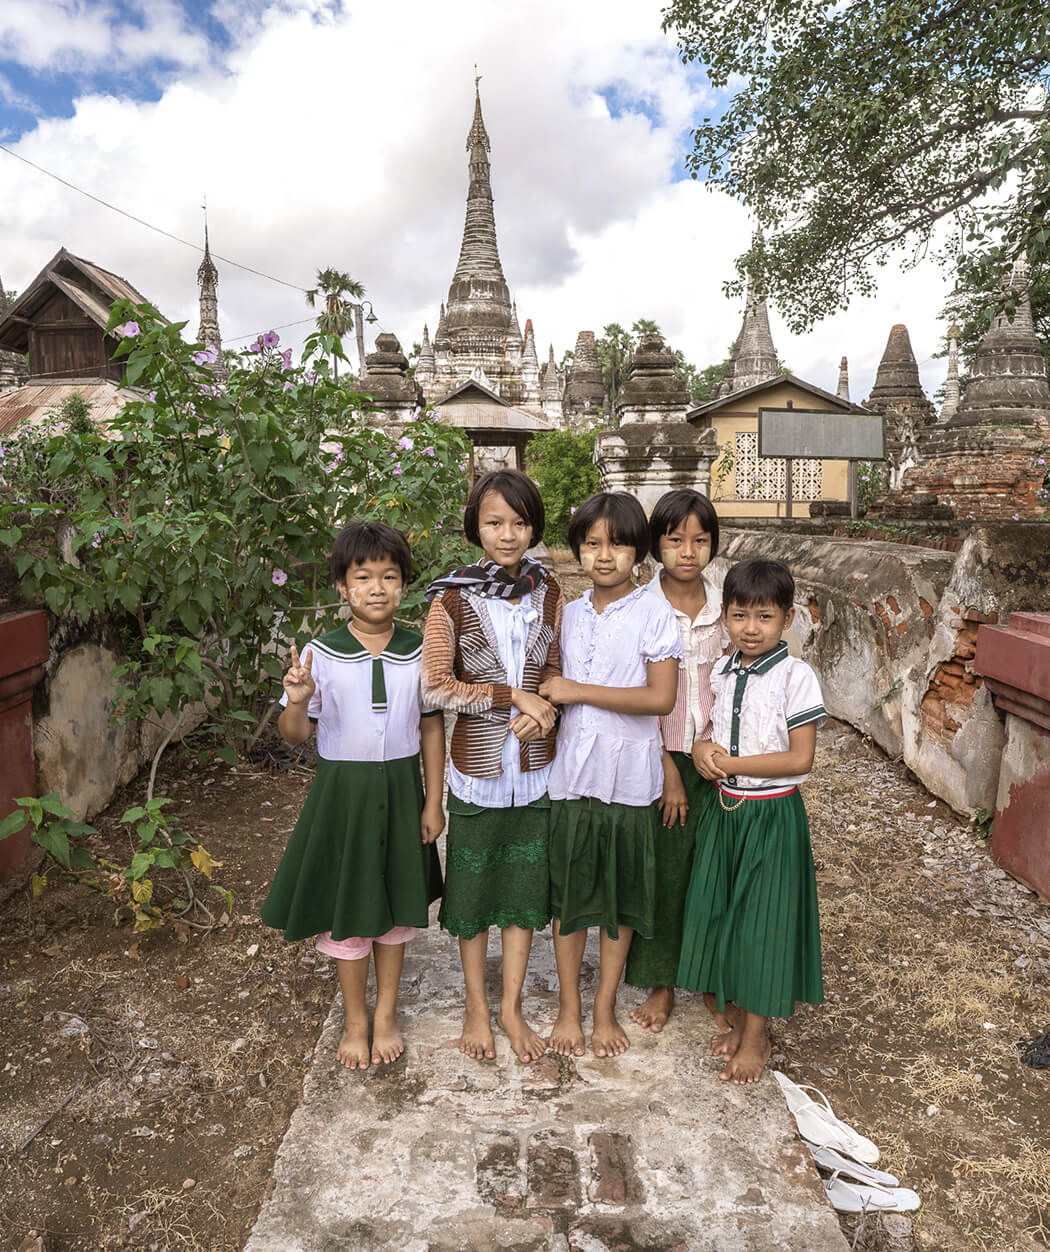 Burmese children at a local temple near the Chindwin River